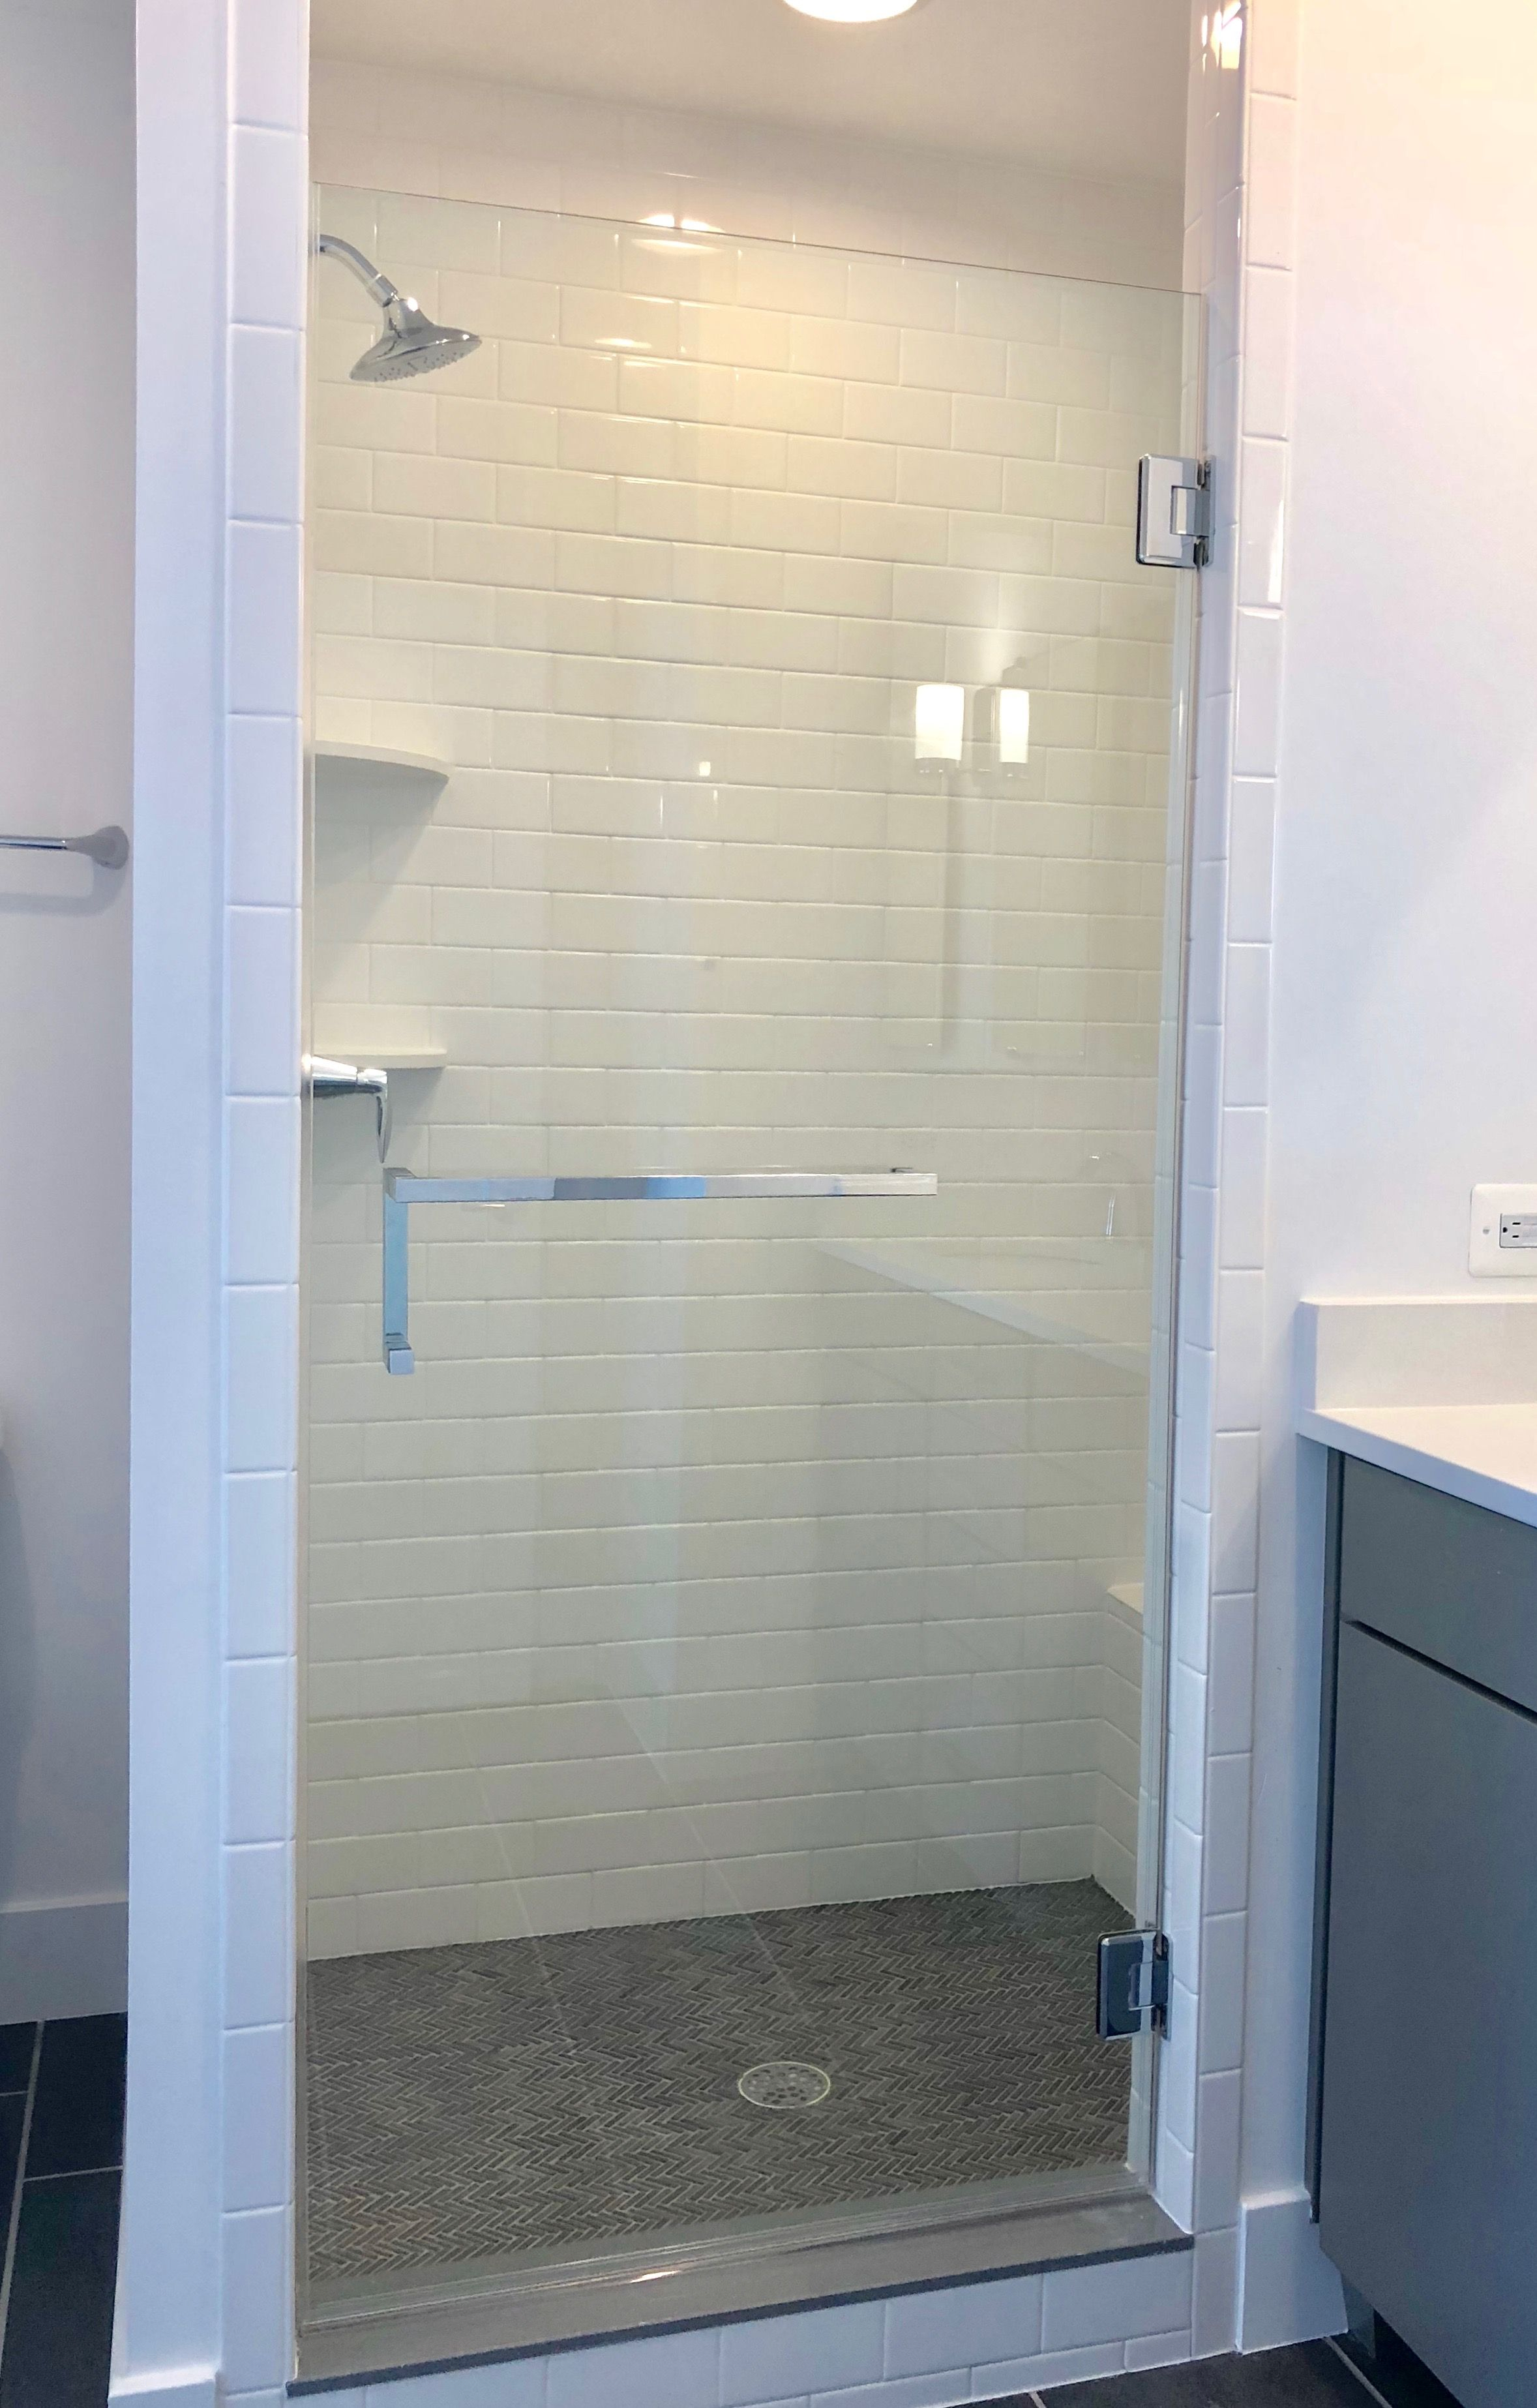 Frameless Shower Installation In Baltimore Md With A Square Towel